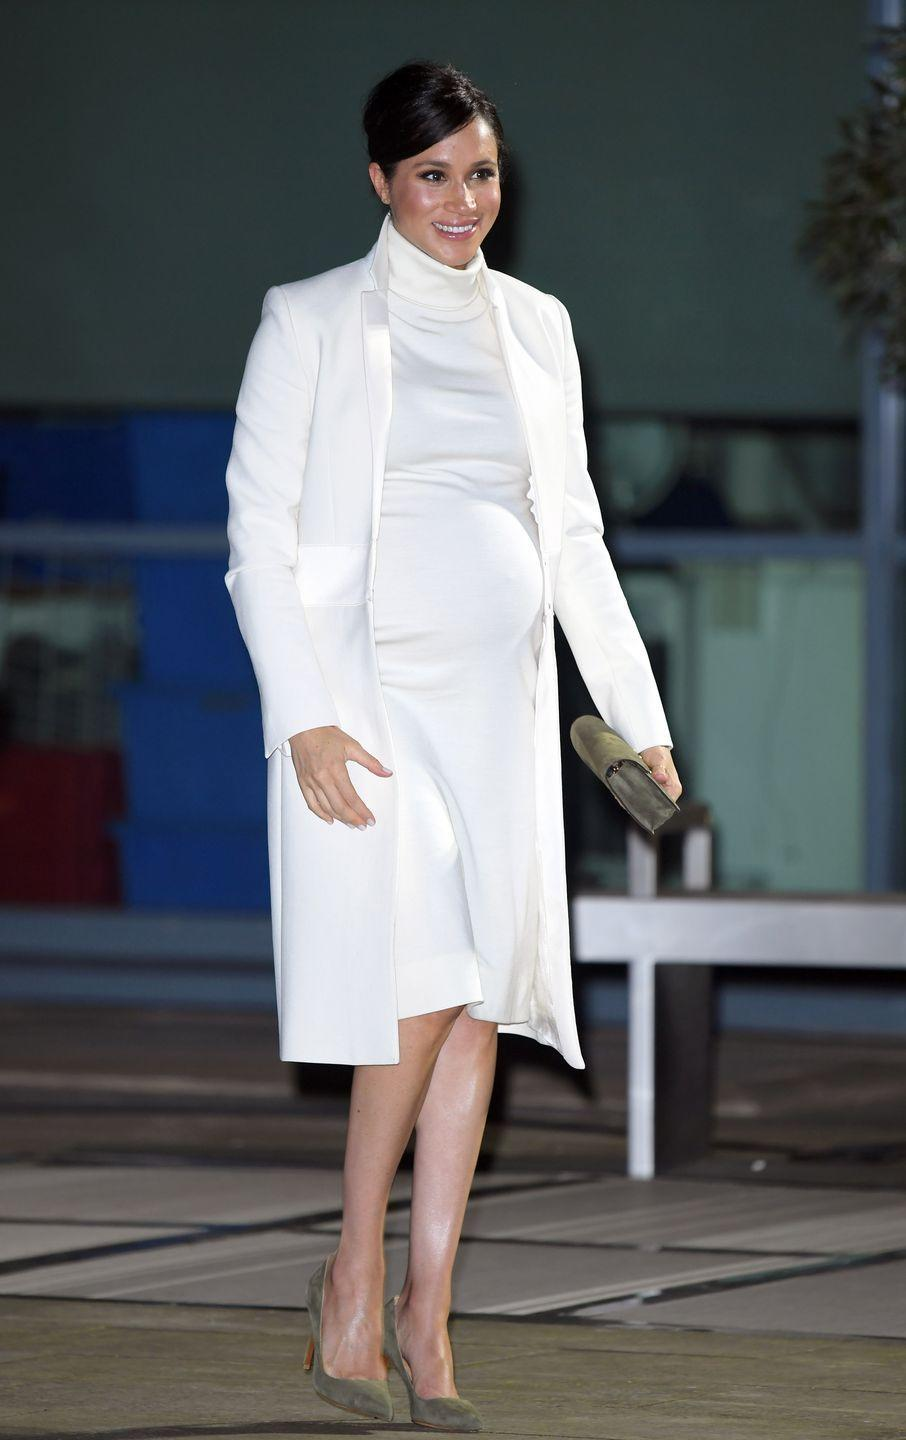 "<p>The Duchess of Sussex re-wore a white <a href=""https://orchardmile.com/amanda-wakeley/cream-sculpted-tailoring-crombie-coat-awkf7c474c2?"" rel=""nofollow noopener"" target=""_blank"" data-ylk=""slk:Amanda Wakely coat"" class=""link rapid-noclick-resp"">Amanda Wakely coat</a> with a turtleneck dress by Calvin Klein to attend <a href=""https://www.townandcountrymag.com/style/fashion-trends/a26294017/meghan-markle-white-dress-coat-wider-earth/"" rel=""nofollow noopener"" target=""_blank"" data-ylk=""slk:a gala performance"" class=""link rapid-noclick-resp"">a gala performance</a> of ""The Wider Earth"" at the Natural History Museum. Meghan paired the white monochrome look with an <a href=""https://www.ralphlauren.com/women-accessories-handbags?"" rel=""nofollow noopener"" target=""_blank"" data-ylk=""slk:olive clutch and pumps"" class=""link rapid-noclick-resp"">olive clutch and pumps</a>, both by Ralph Lauren, <a href=""https://www.townandcountrymag.com/society/tradition/a22026782/meghan-markle-dress-prince-louis-christening/"" rel=""nofollow noopener"" target=""_blank"" data-ylk=""slk:which she previously wore"" class=""link rapid-noclick-resp"">which she previously wore </a><a href=""https://www.townandcountrymag.com/society/tradition/g22025900/prince-louis-royal-baby-christening-baptism-photos/"" rel=""nofollow noopener"" target=""_blank"" data-ylk=""slk:to Prince Louis's christening"" class=""link rapid-noclick-resp"">to Prince Louis's christening</a>. </p>"